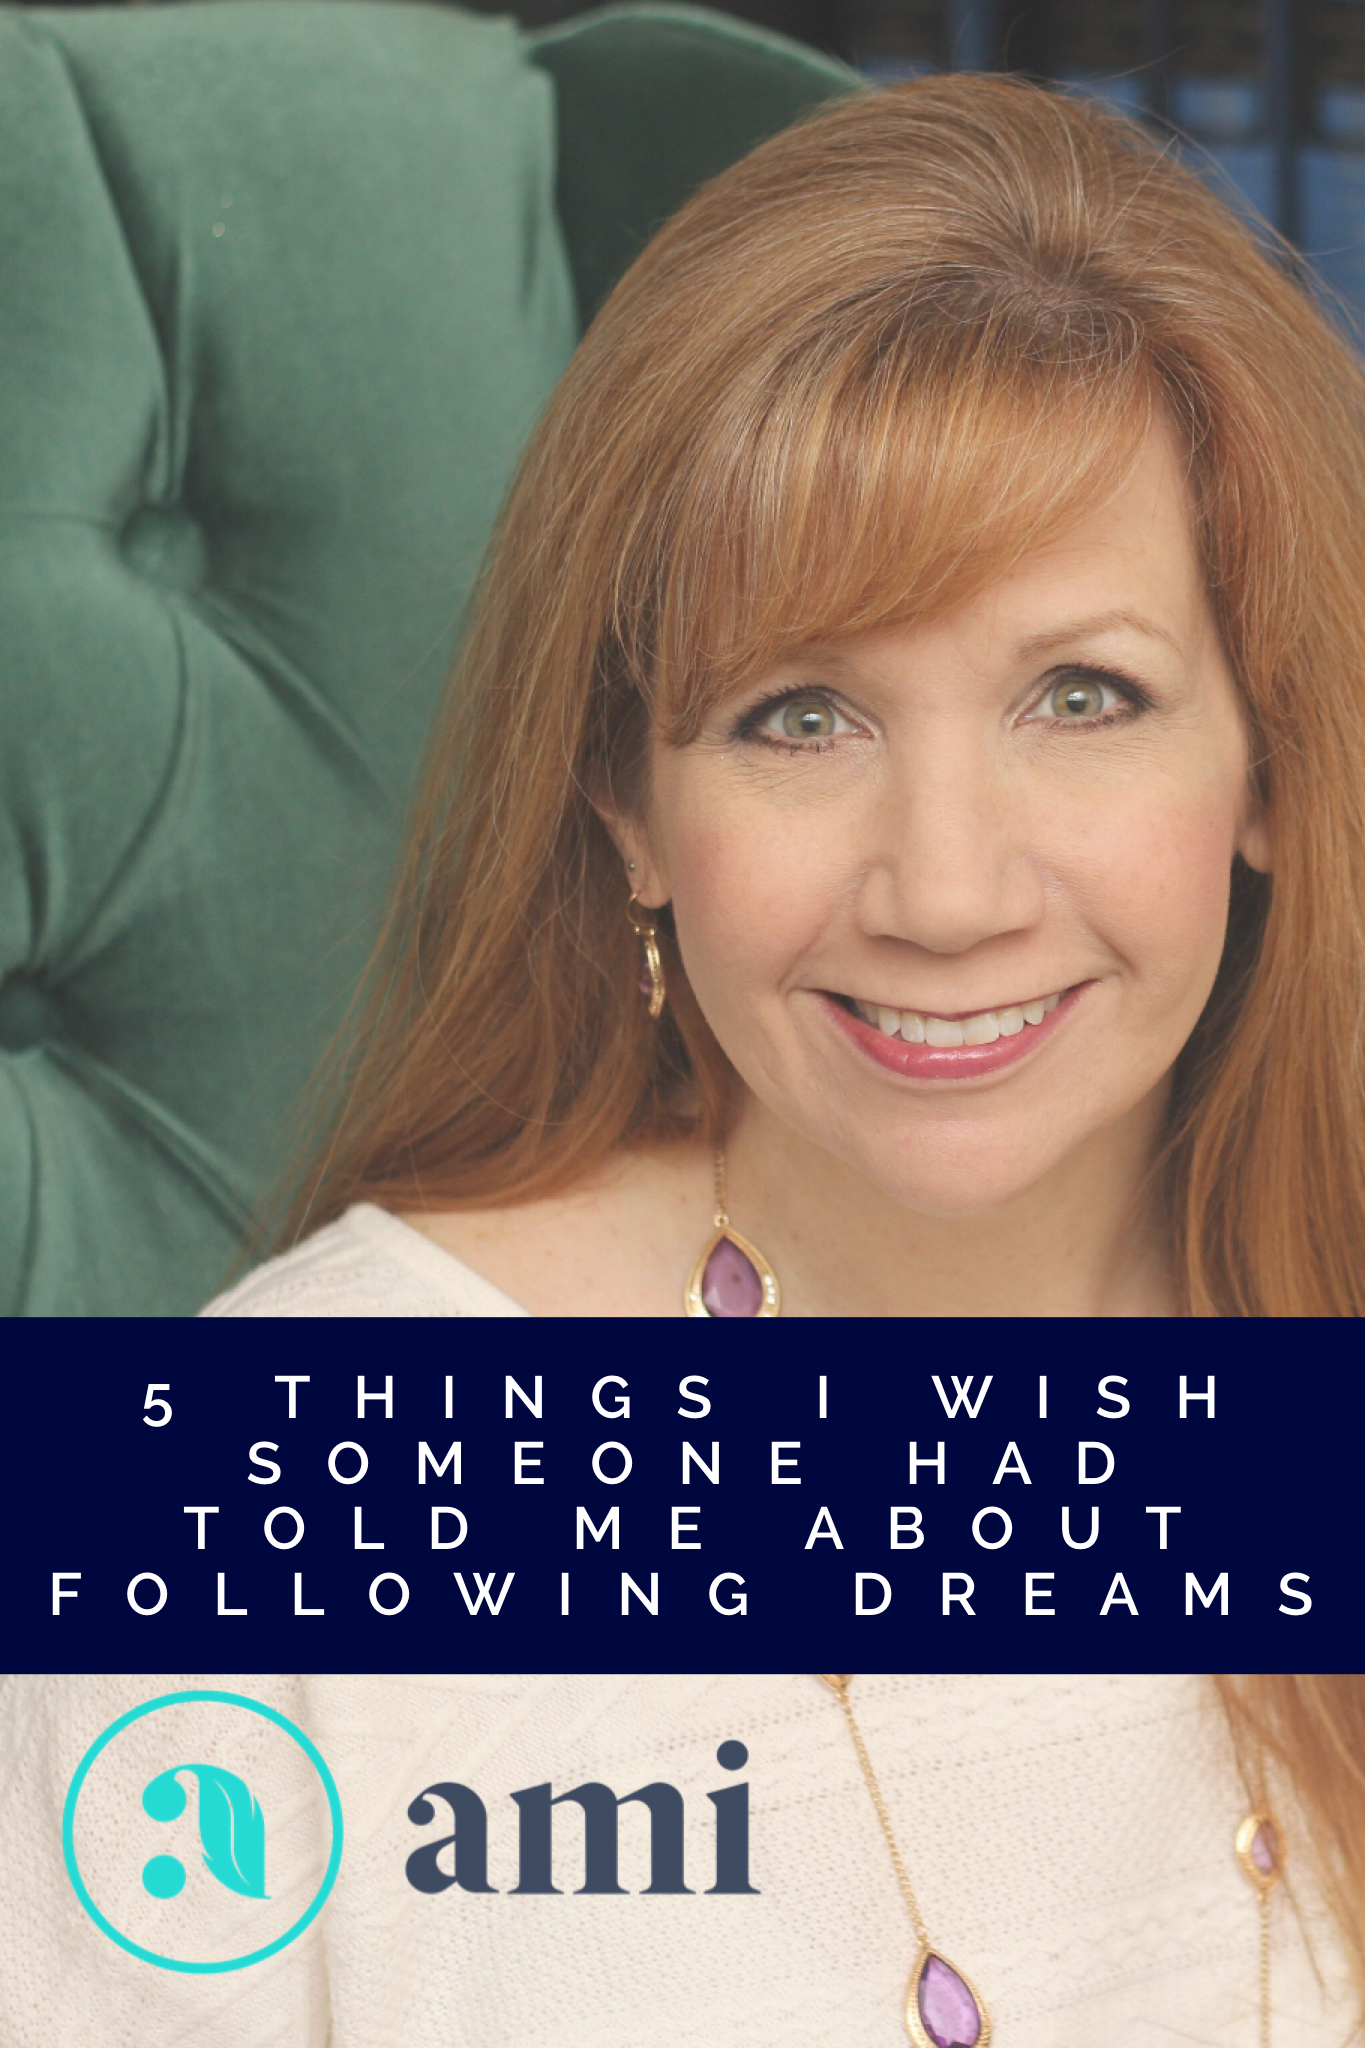 """When I fully embraced what God was calling me to do, I was met with obstacles I never expected. I share this and more in my new offer, """"5 Things I Wish Someone Had Told Me About Following My Dreams"""" (ridiculously long title, but I mean every word!). It's a jam-packed video teaching to help you, to give you the tools I wish I had had when I embarked on my journey! #LiveYourPassion #FollowYourDreams"""